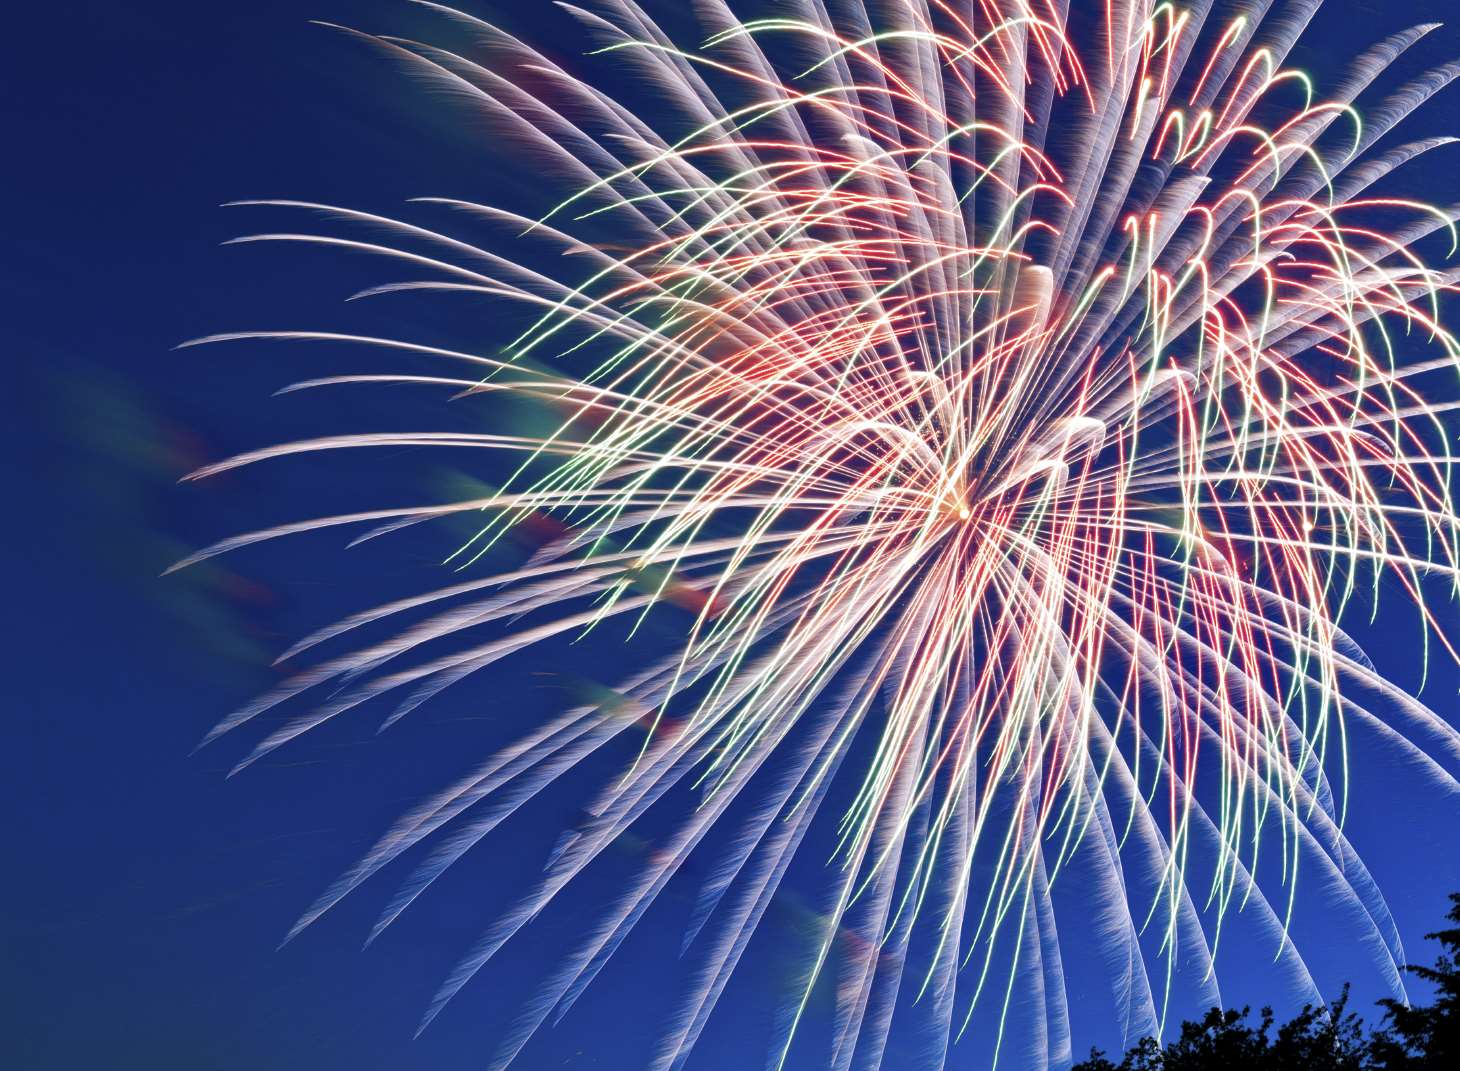 Check out a fireworks display near you